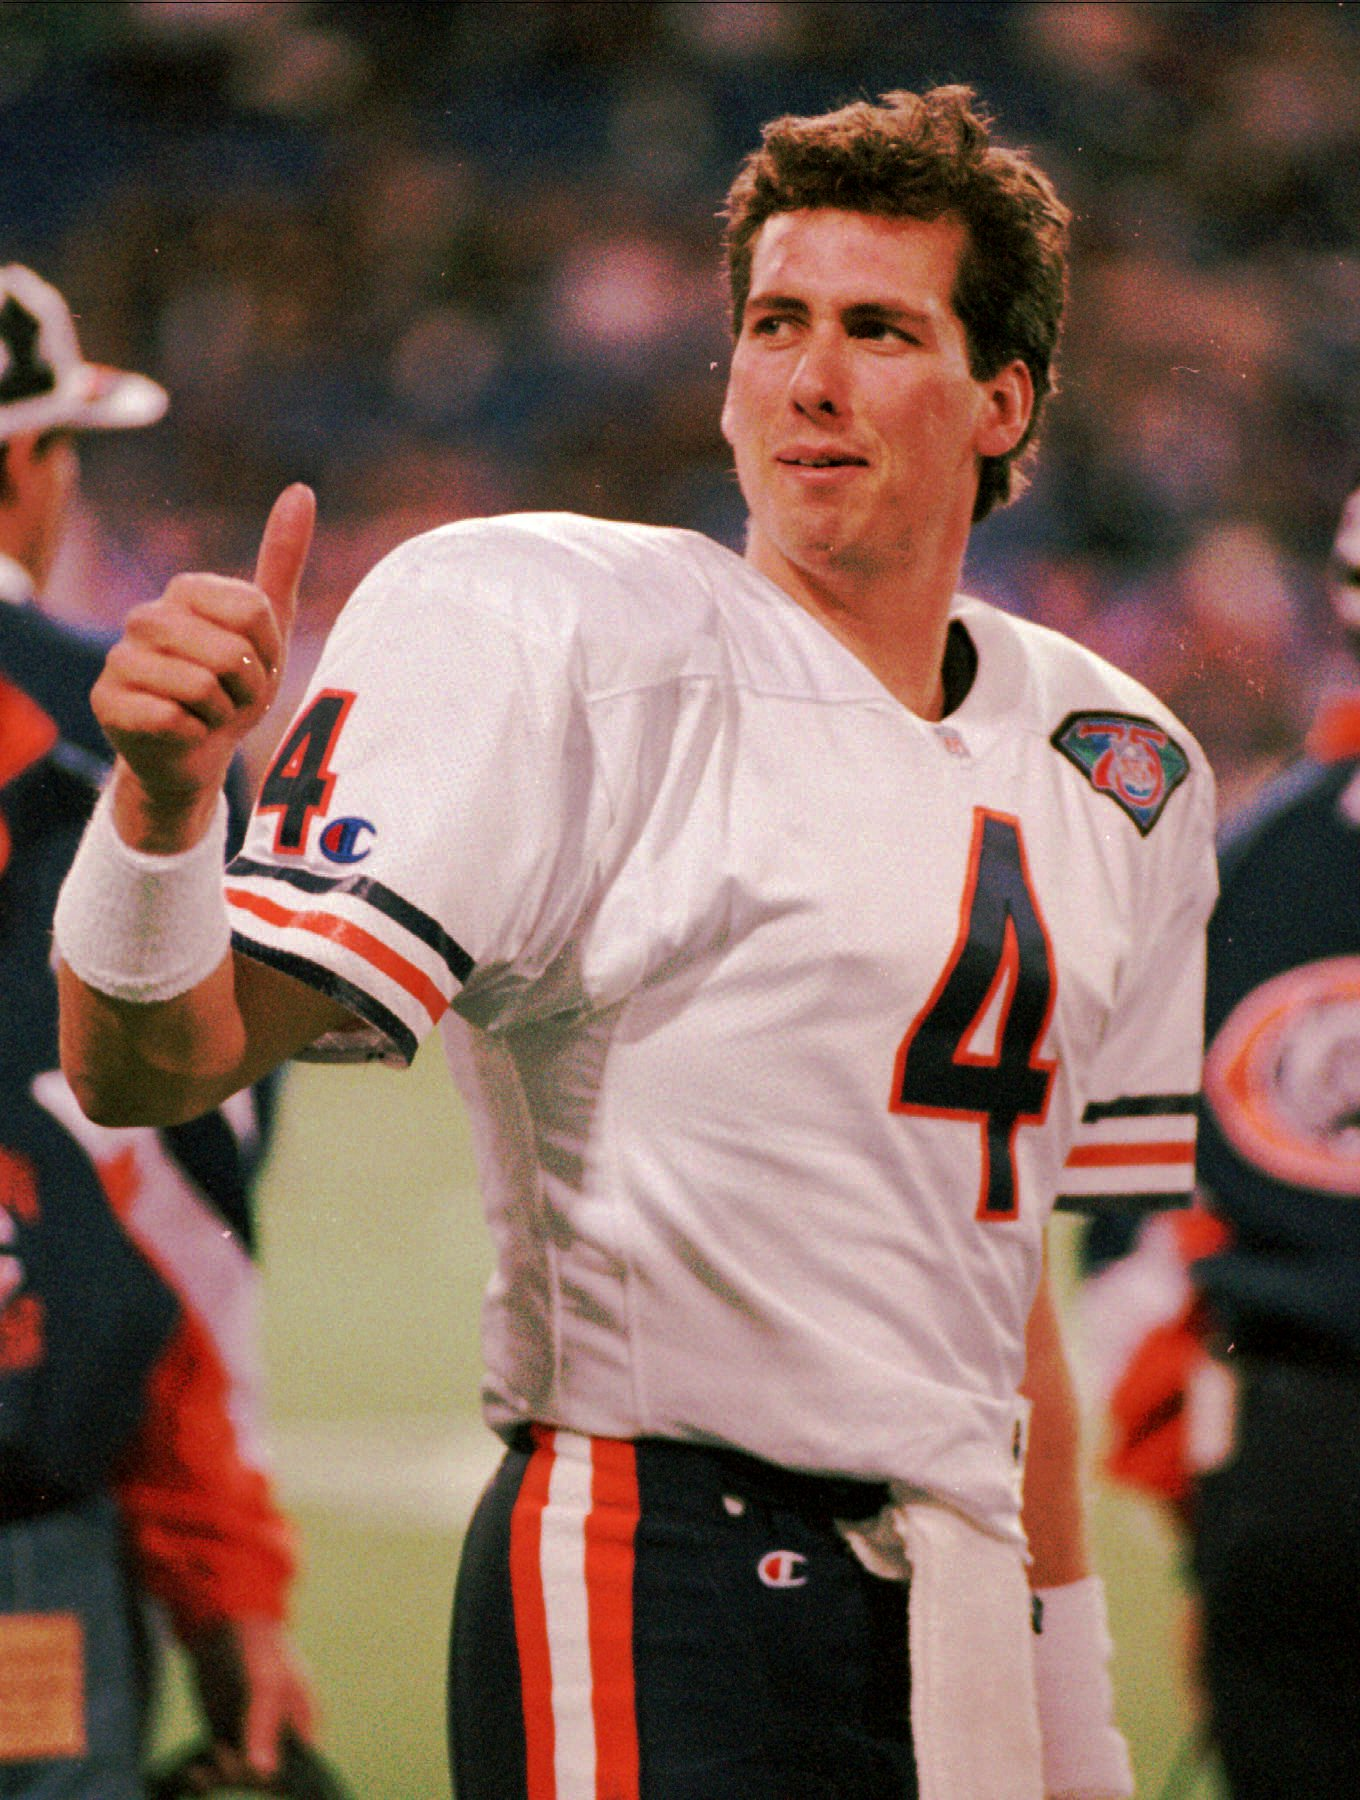 New IMG director of football Steve Walsh spent 11 years in the NFL, including time with the Chicago Bears. (Photo: Associated Press file)